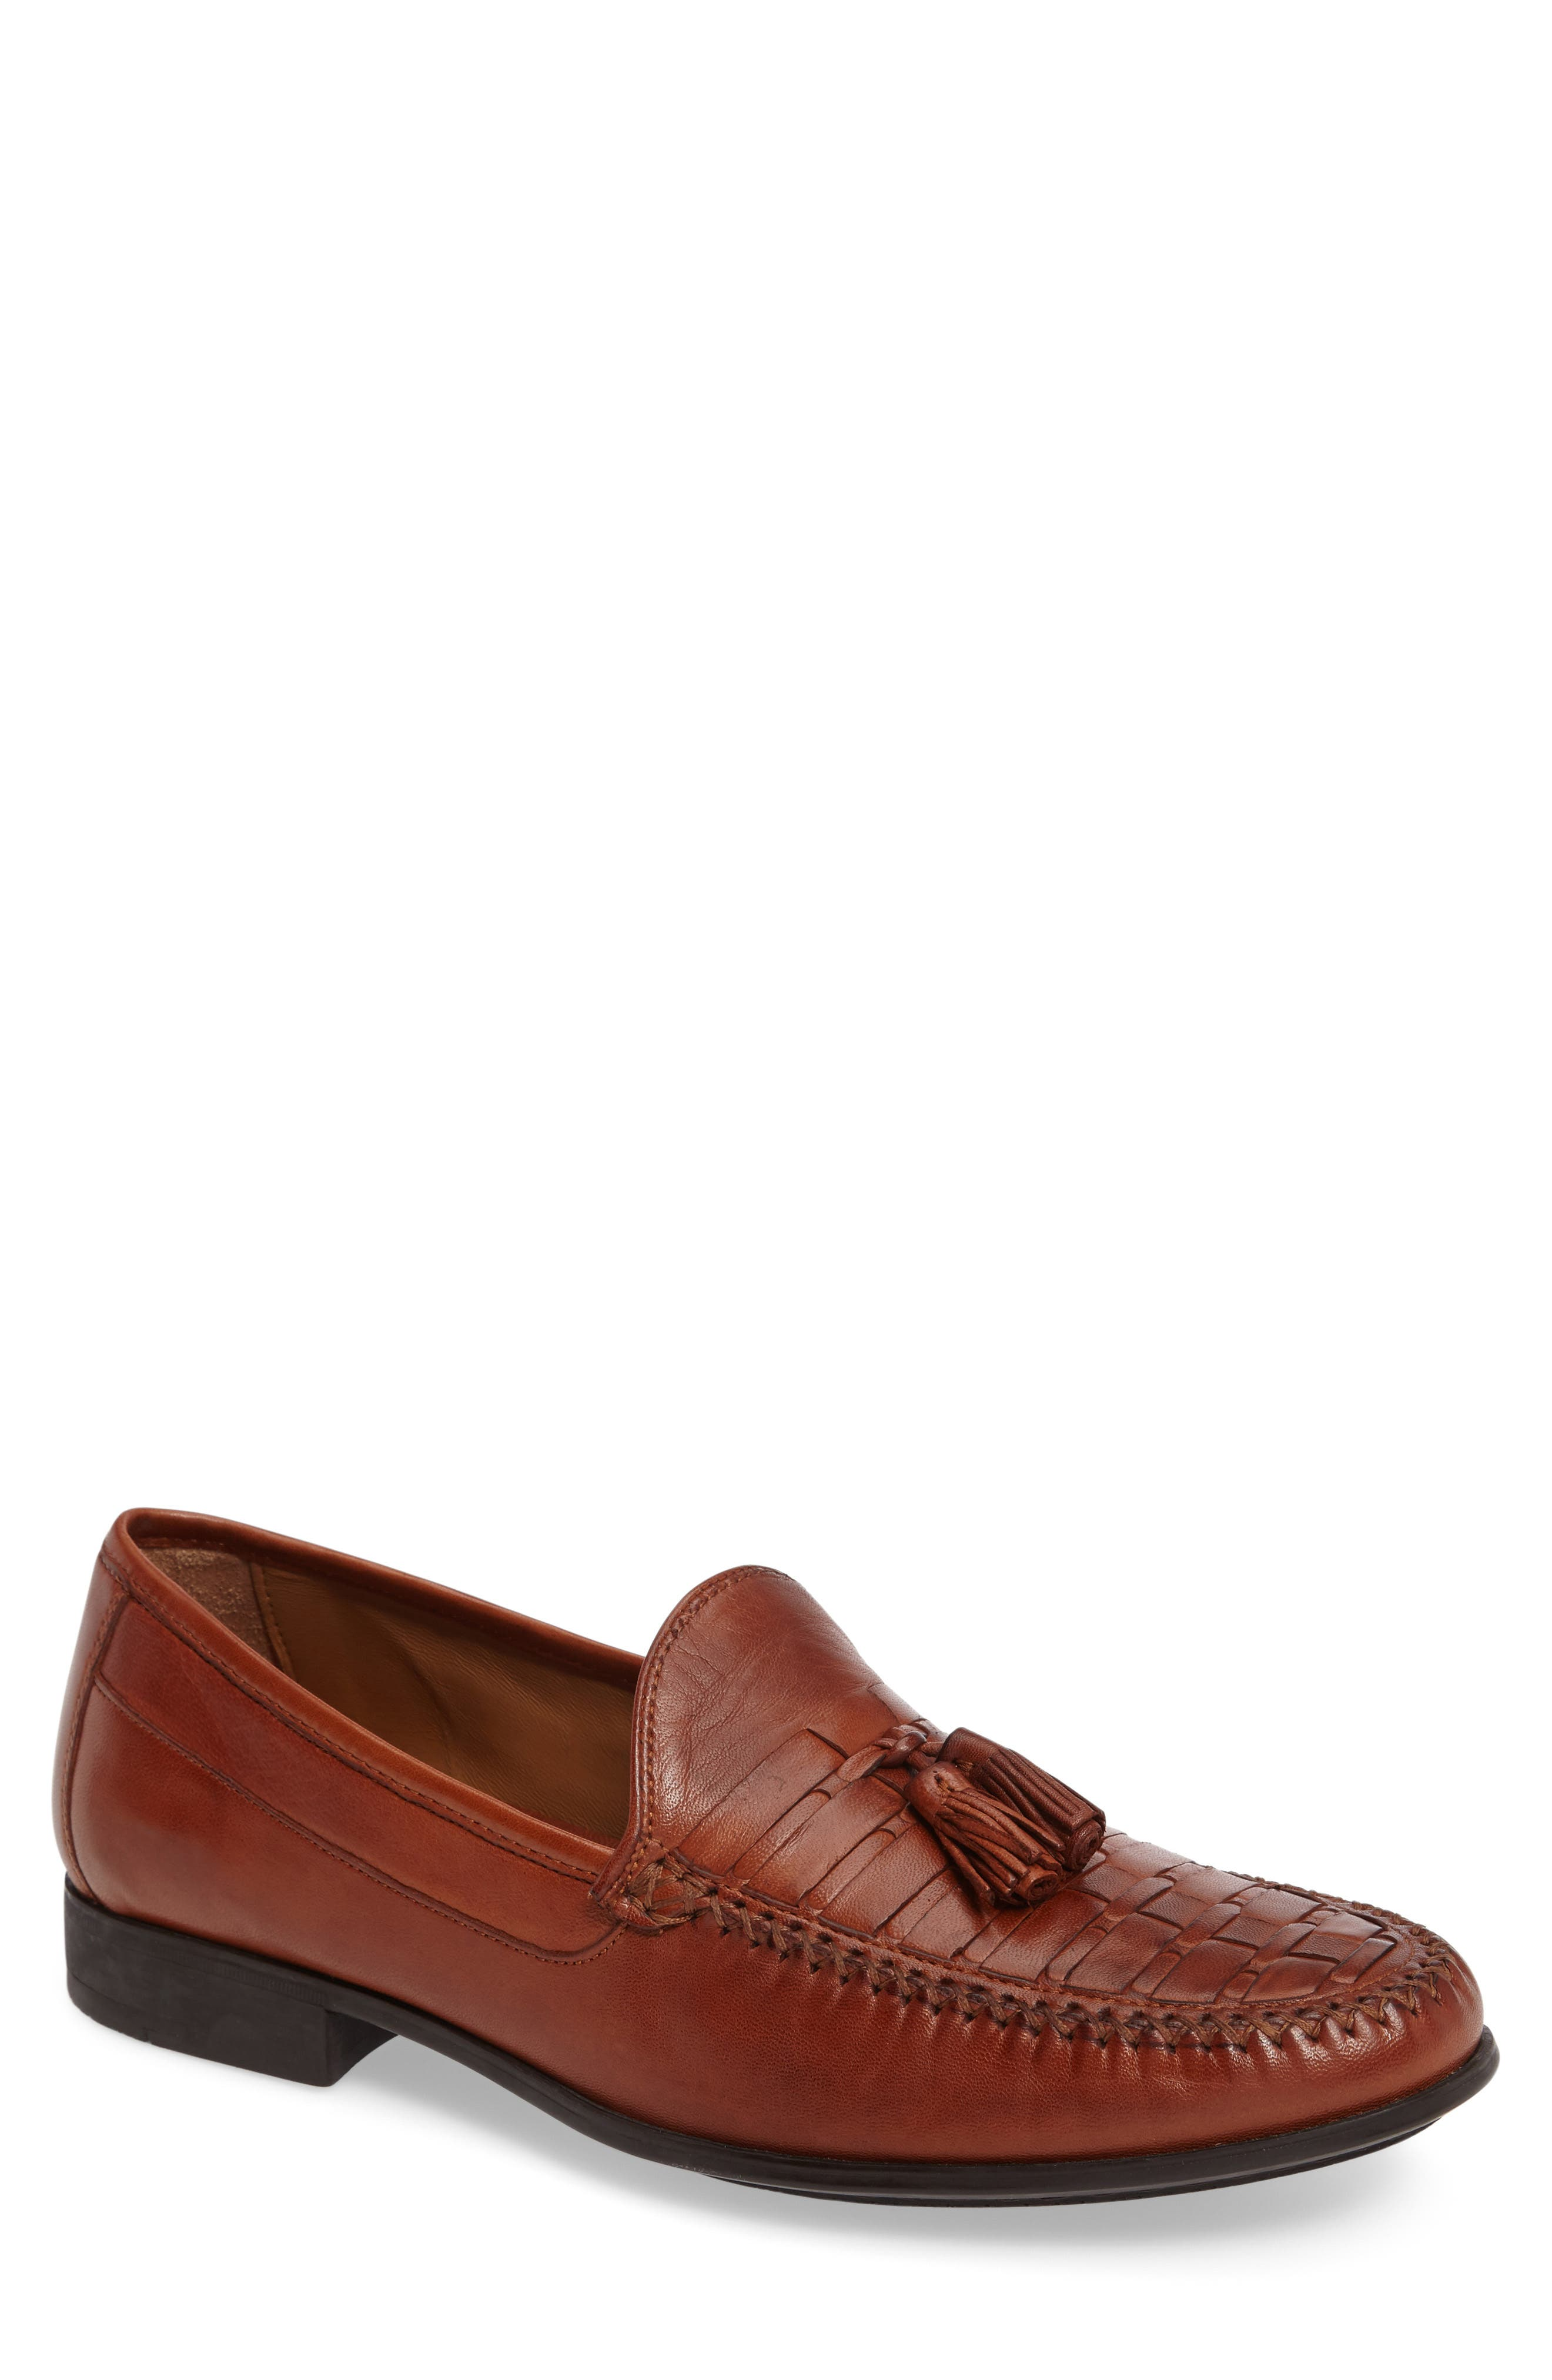 Johnston & Murphy Cresswell Woven Tassel Loafer